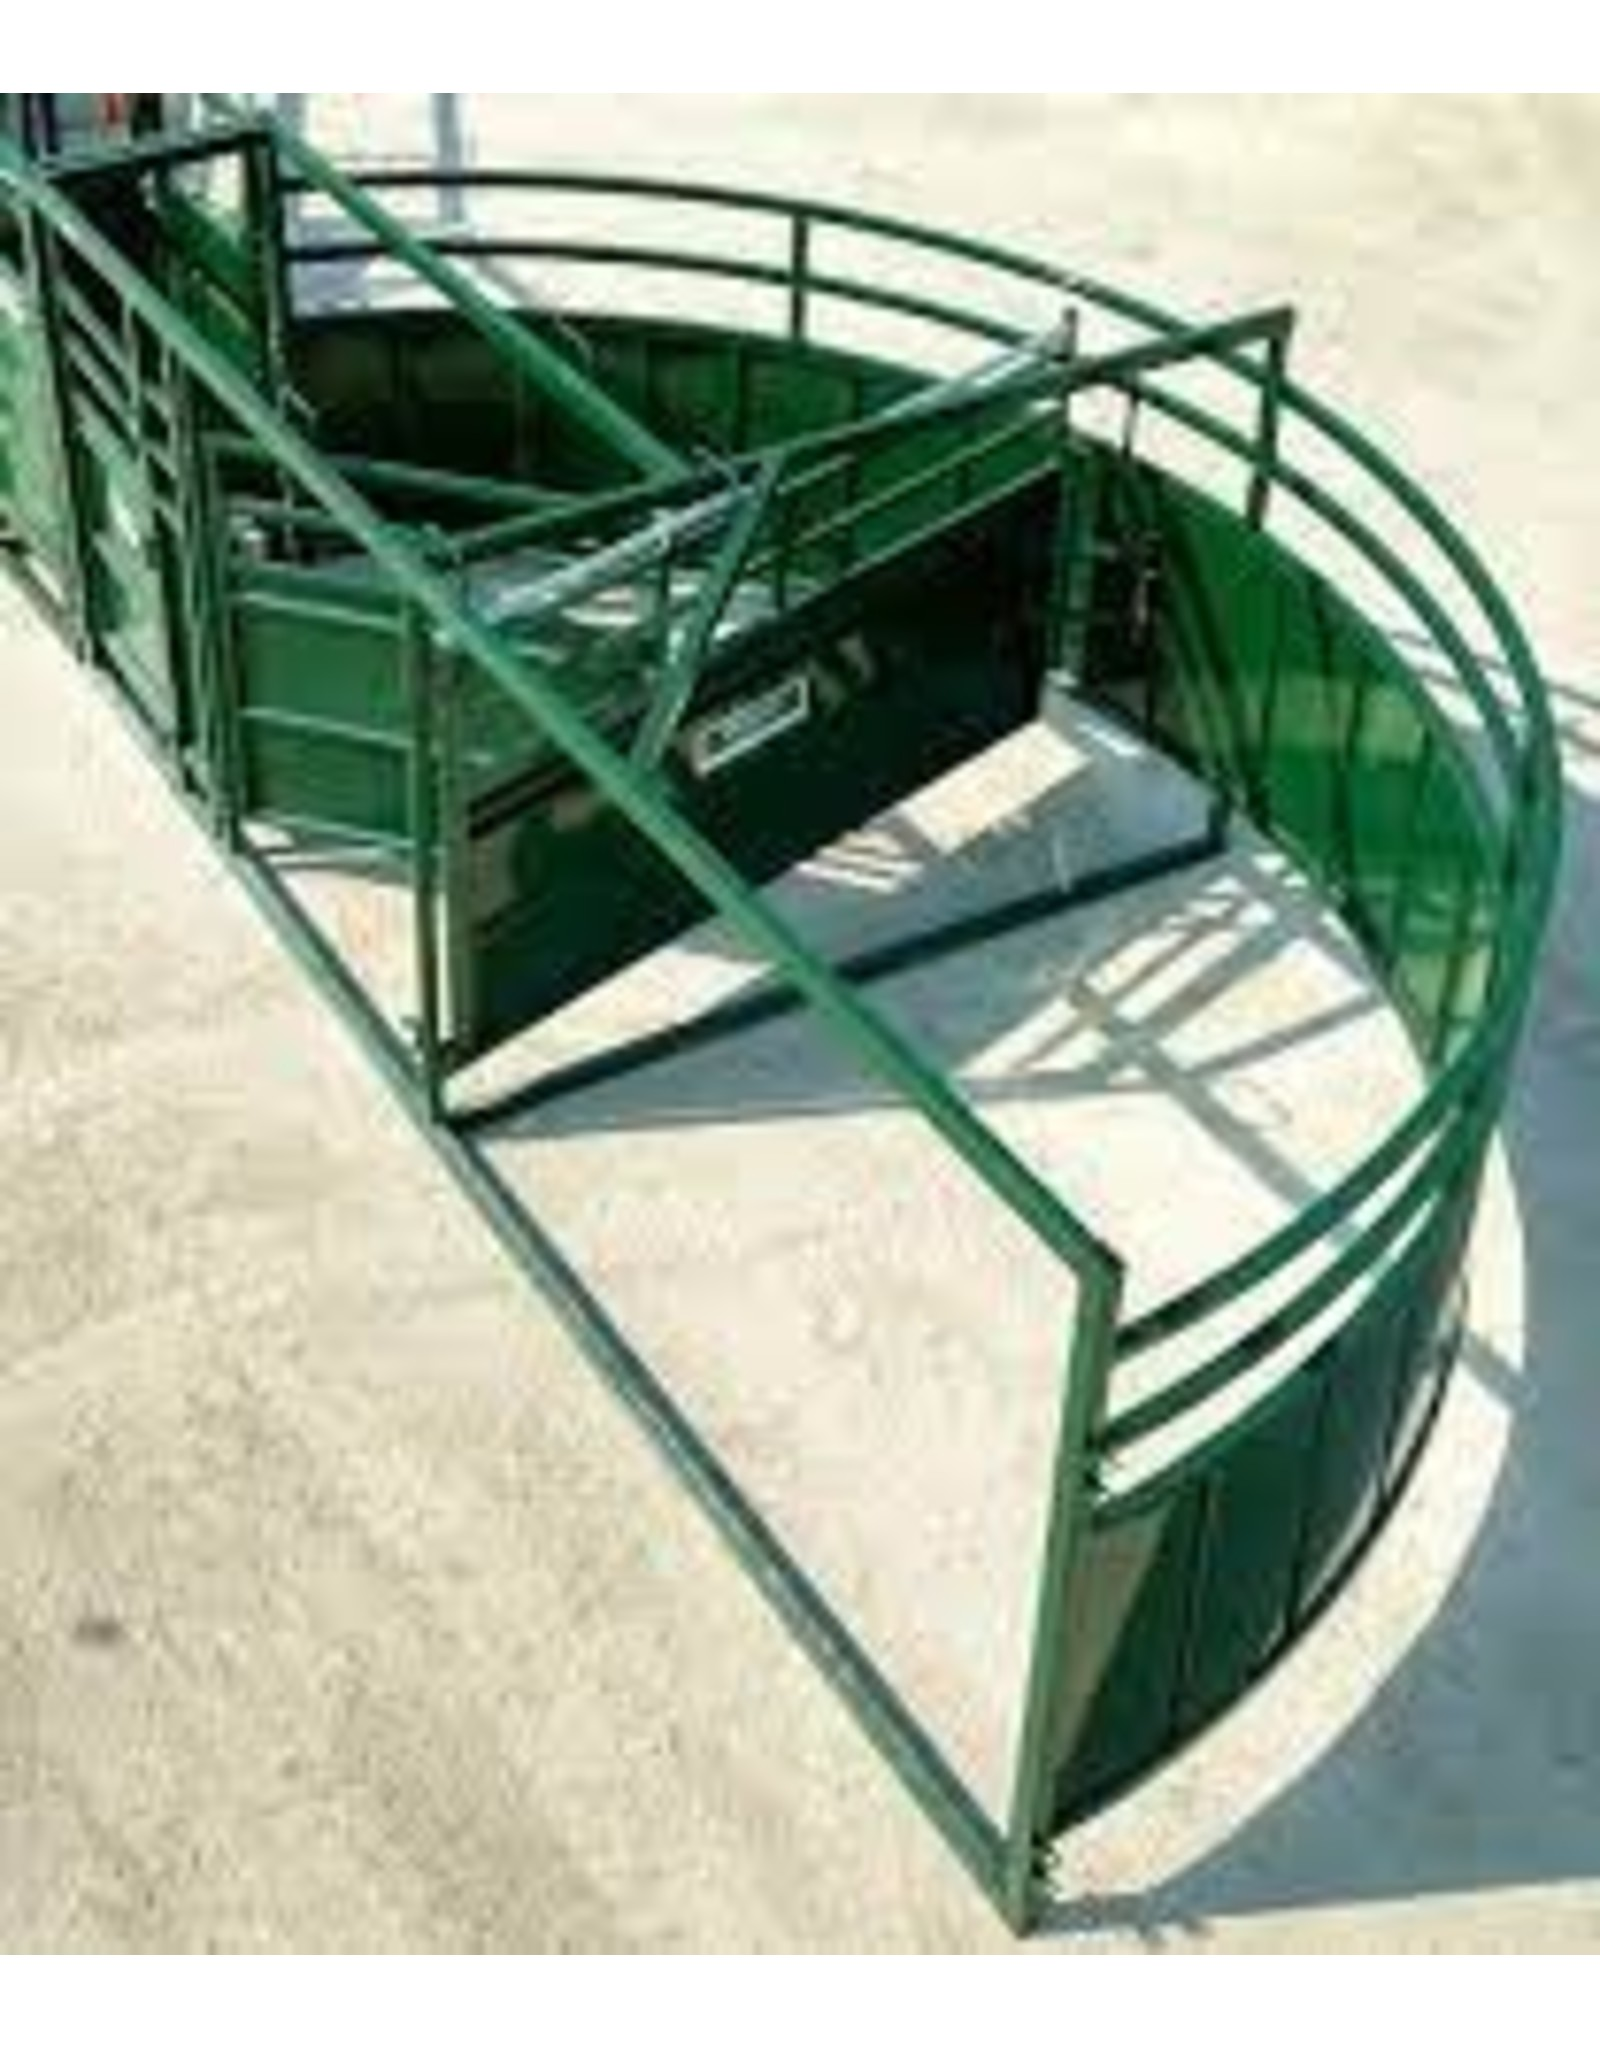 10FT 1/2 CROWDING TUB - LEFT HAND OPERATION  -   Crowding Gate, 3 Curved Panels, Connector Brackets, No Joiner Bars, No Pins/Bolts  (20175786)